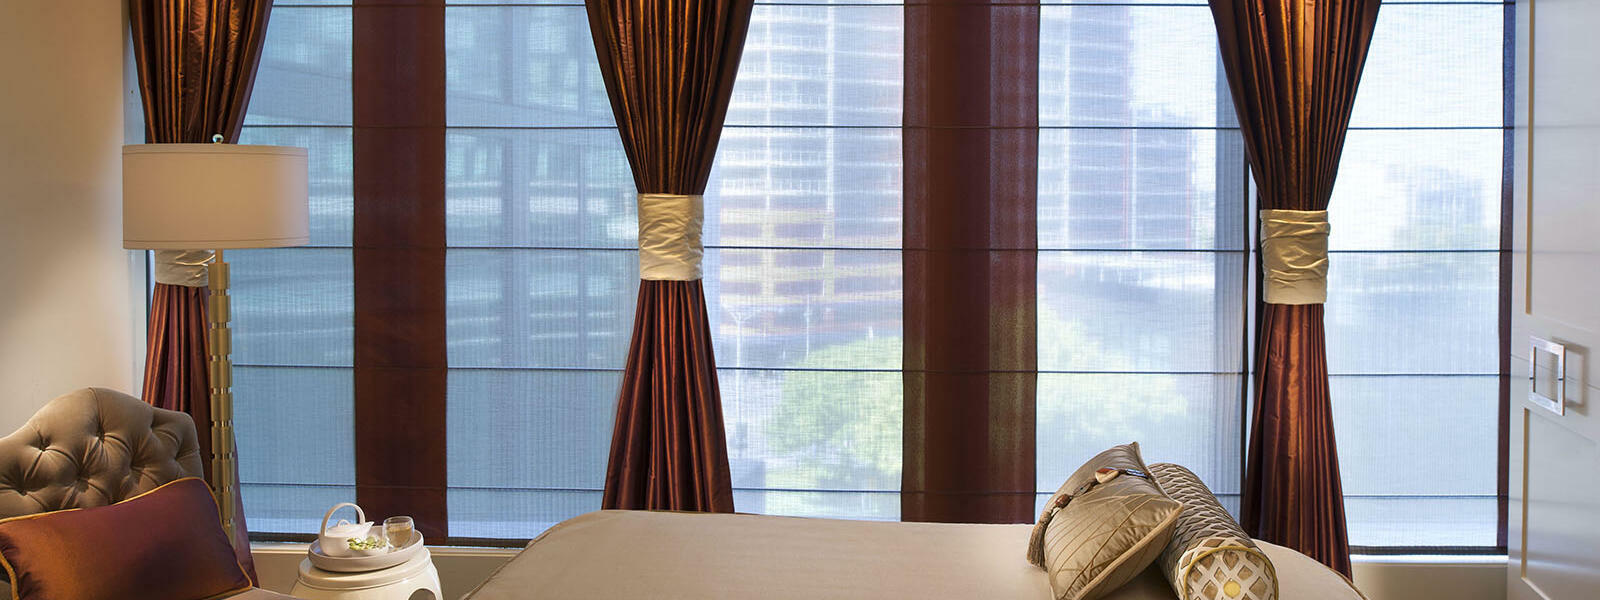 Crown spa deluxe room at Crown Towers Melbourne